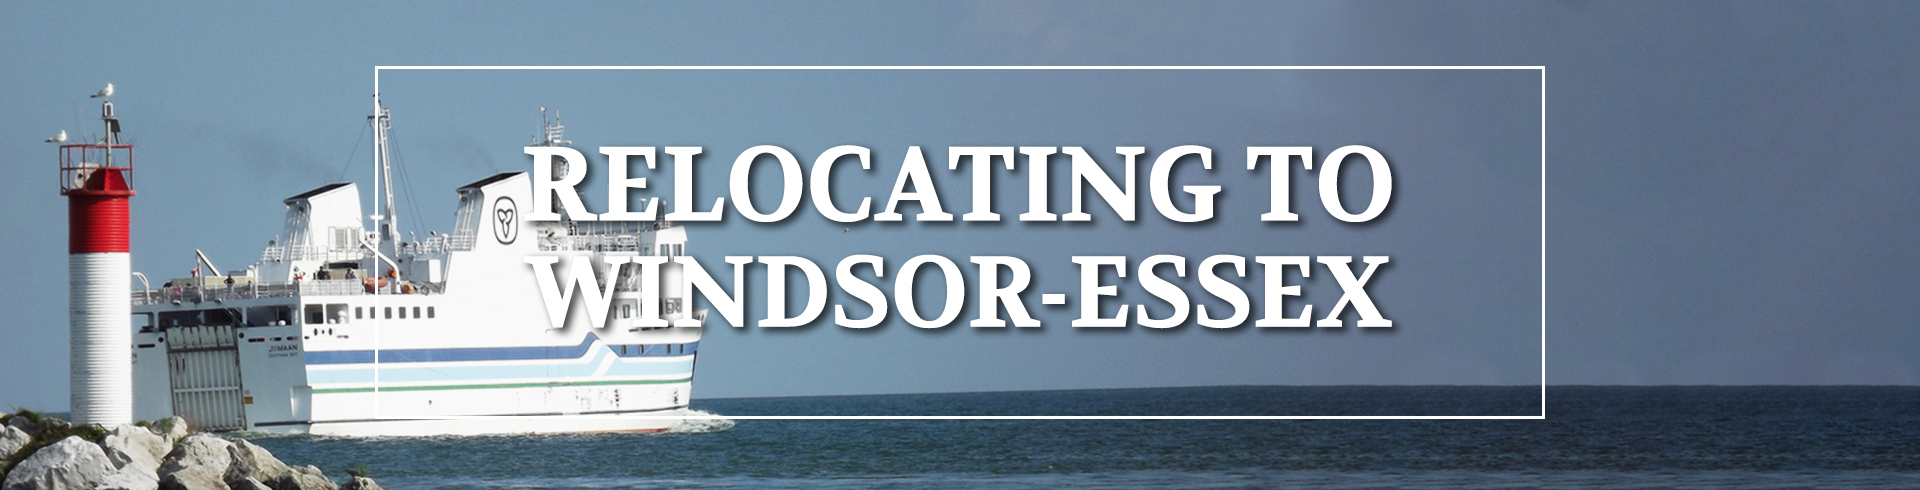 Relocating to Windsor-Essex